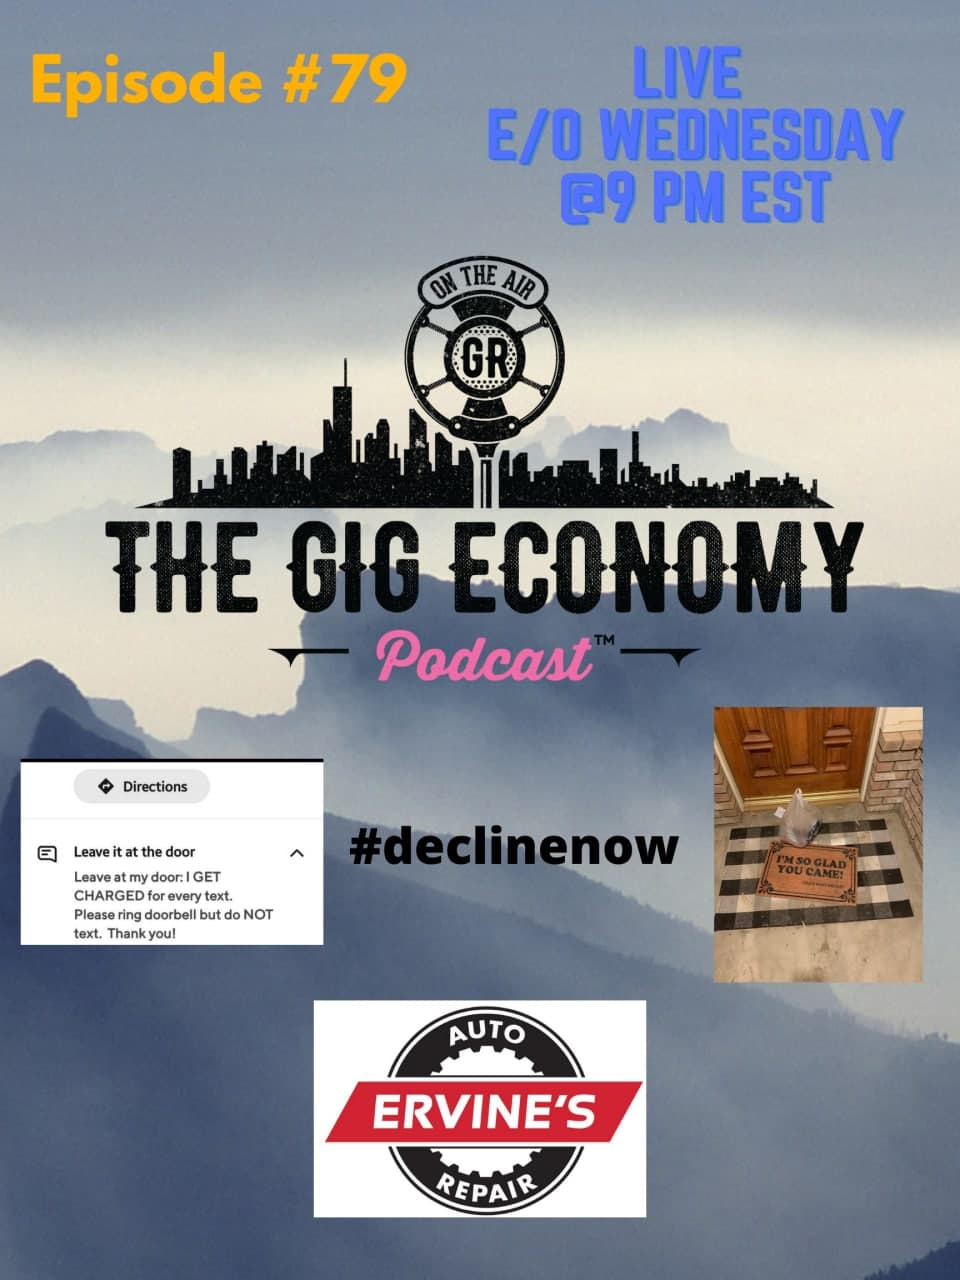 Episode #79 Door Dash #declinenow, Call your mom, and much more gig economy news!